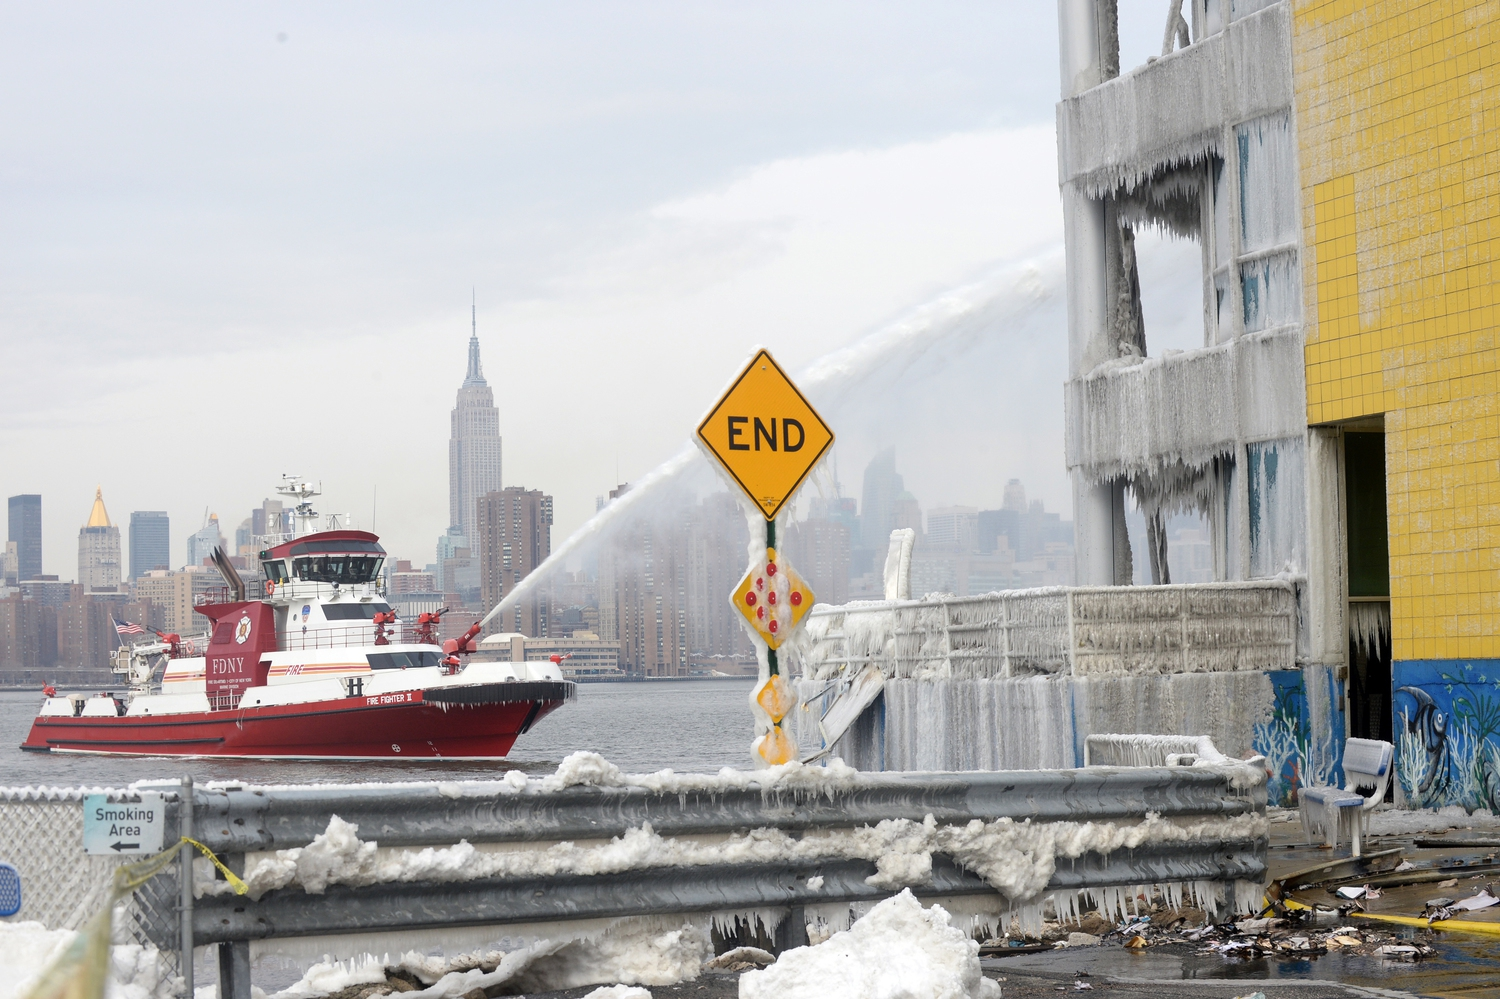 Firefighters continued pouring water on the remains of a 7-alarm fire in a warehouse on the Williamsburg waterfront